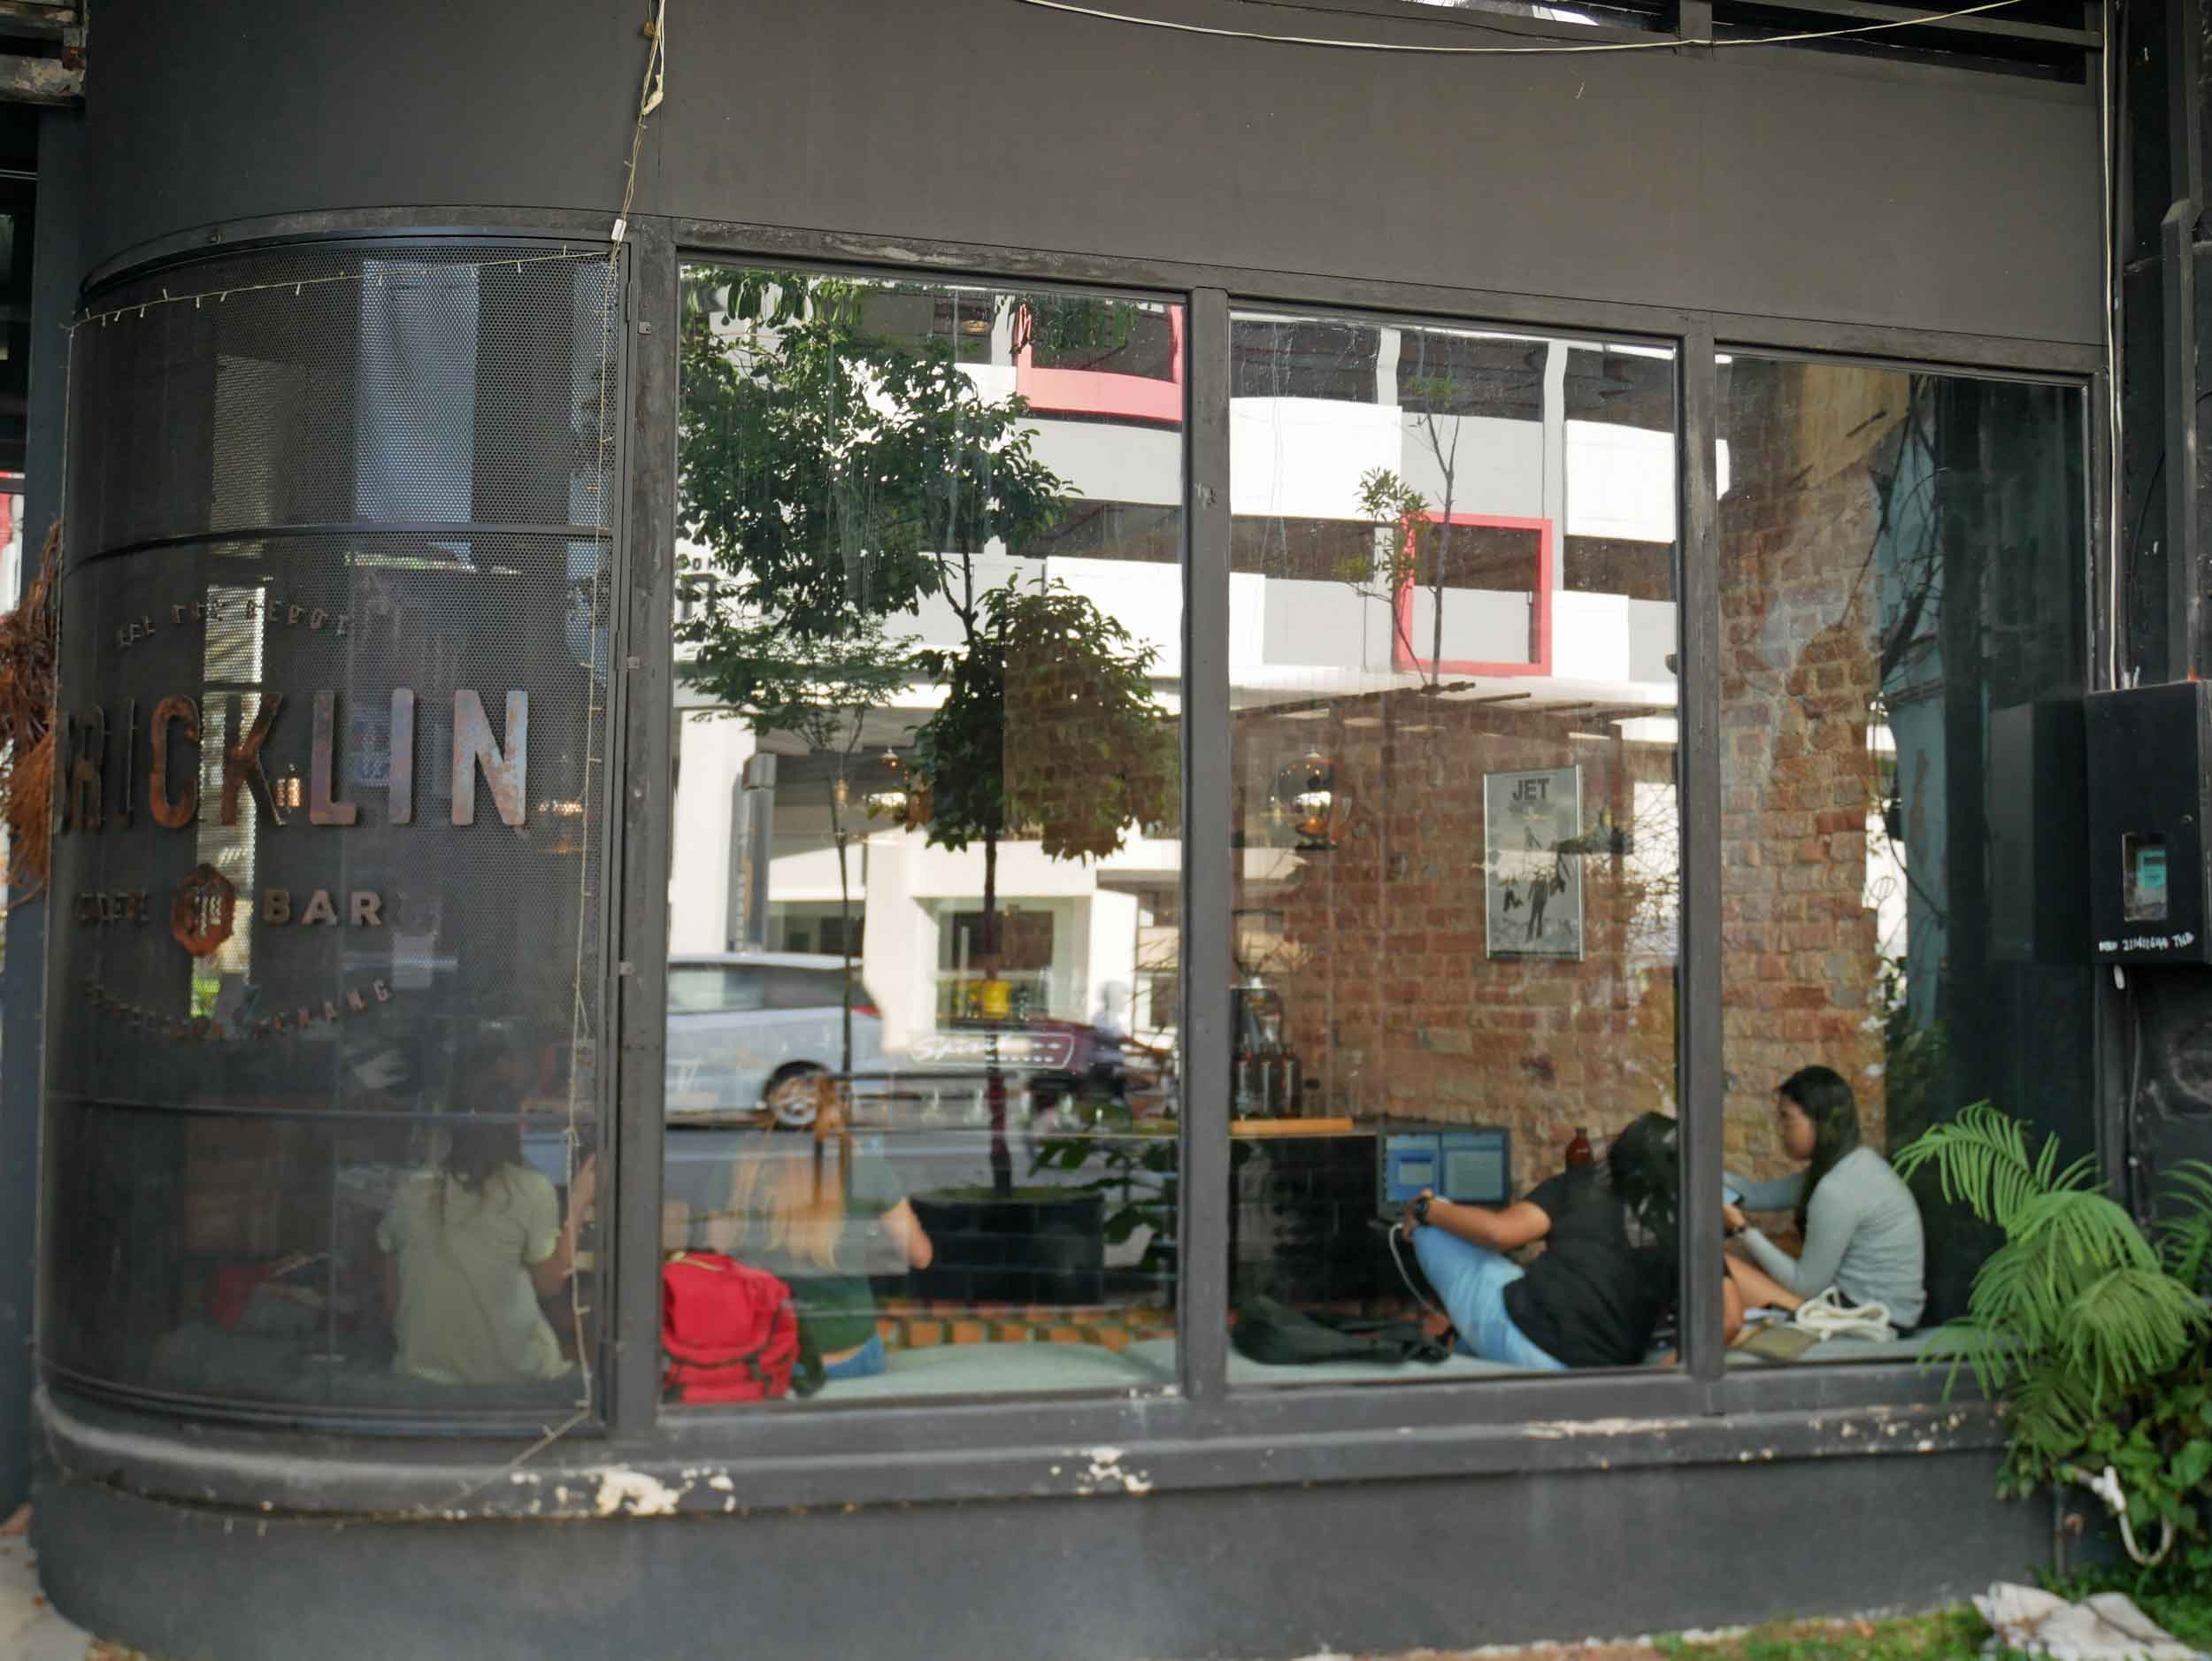 """Bricklin Cafe Bar, a cozy spot for a coffee and pastry, gets its name from the road on which it sits, previously known as """"Brick Kiln."""""""